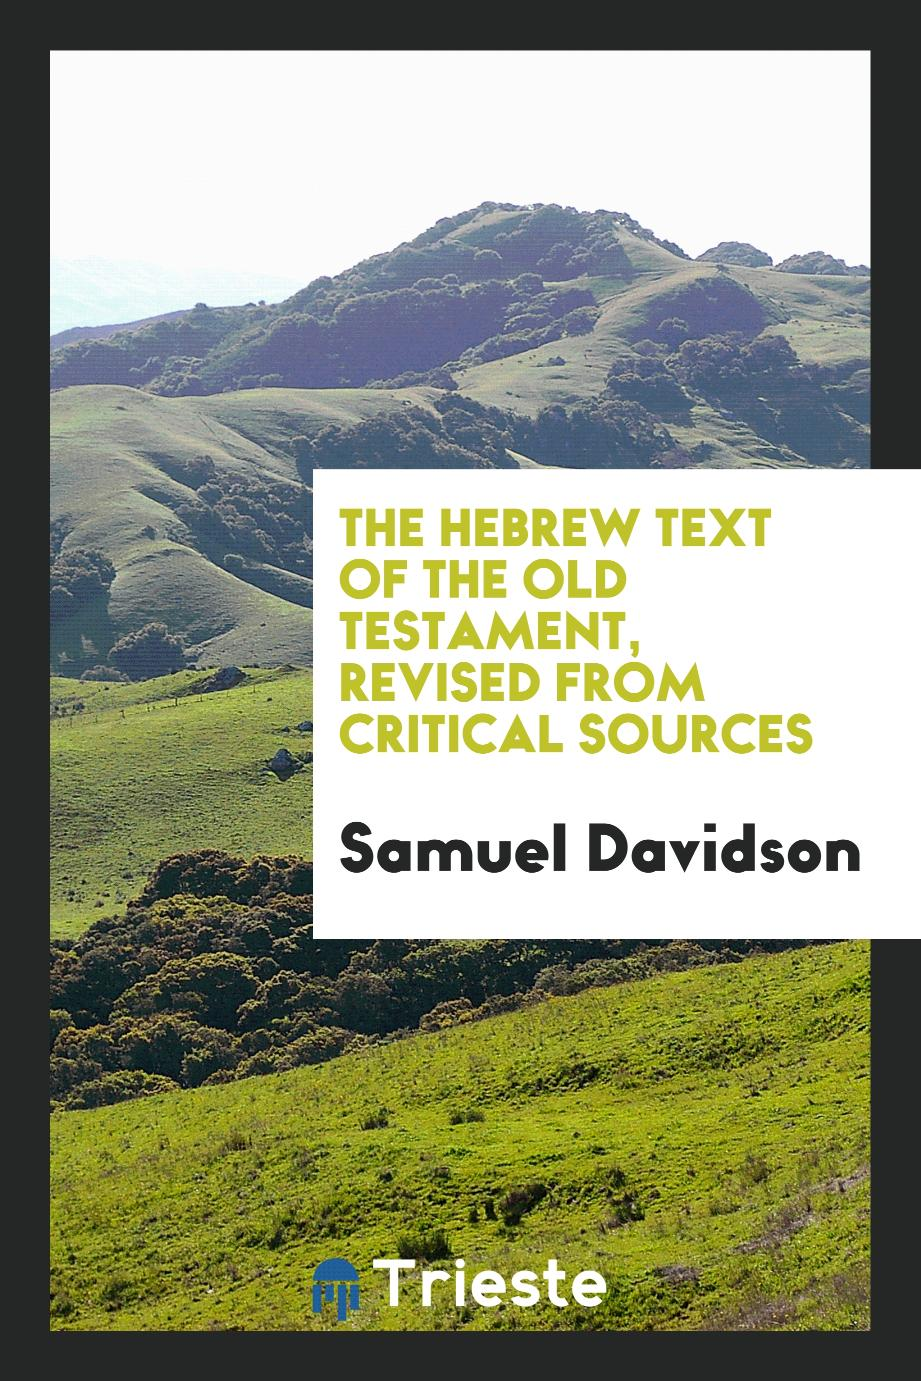 The Hebrew text of the Old Testament, revised from critical sources